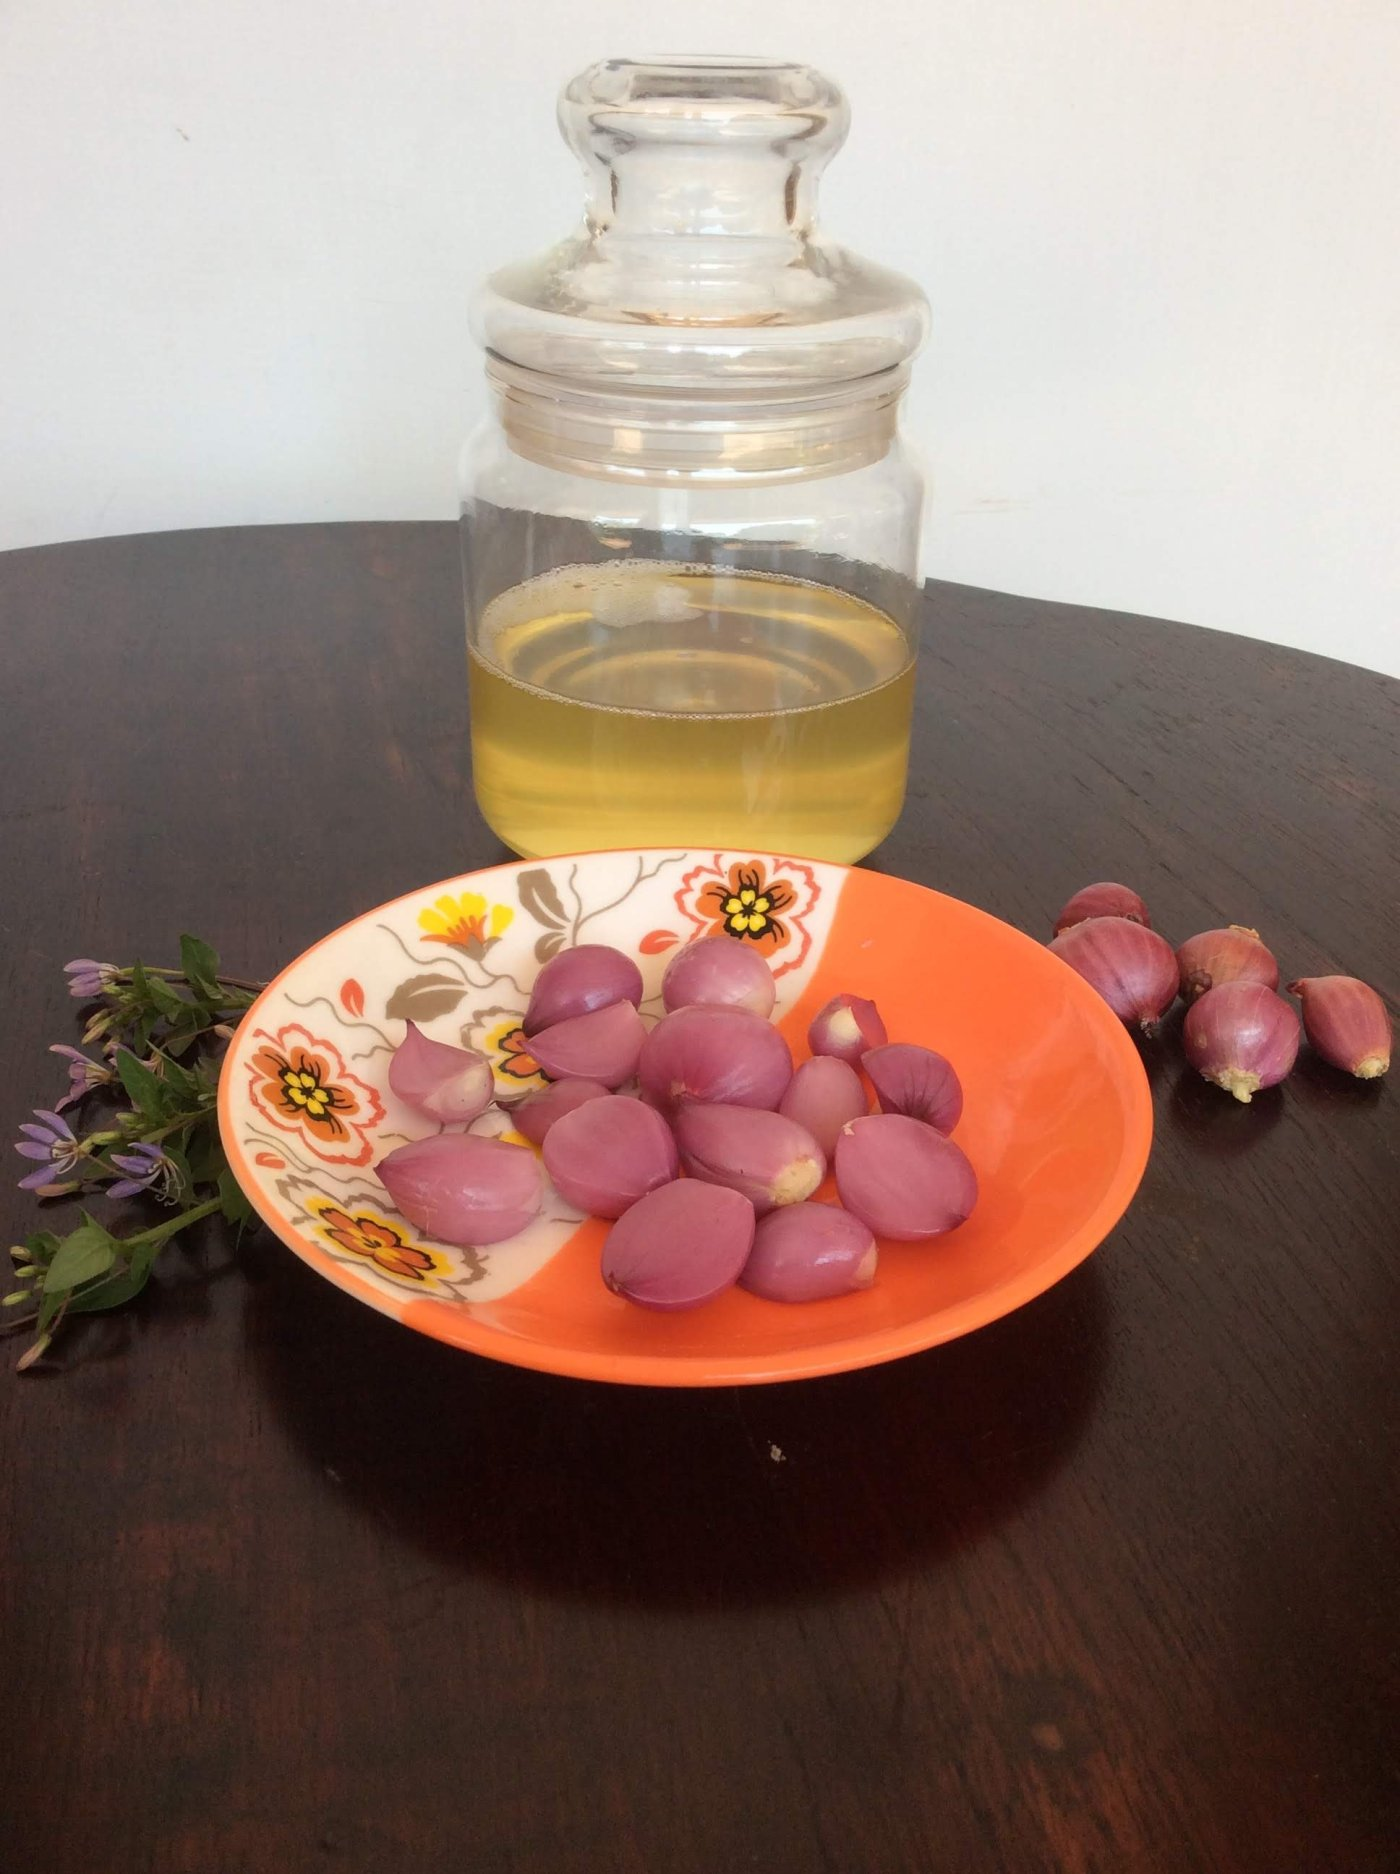 Shallots and coconut oil combination is ideal for hair care.